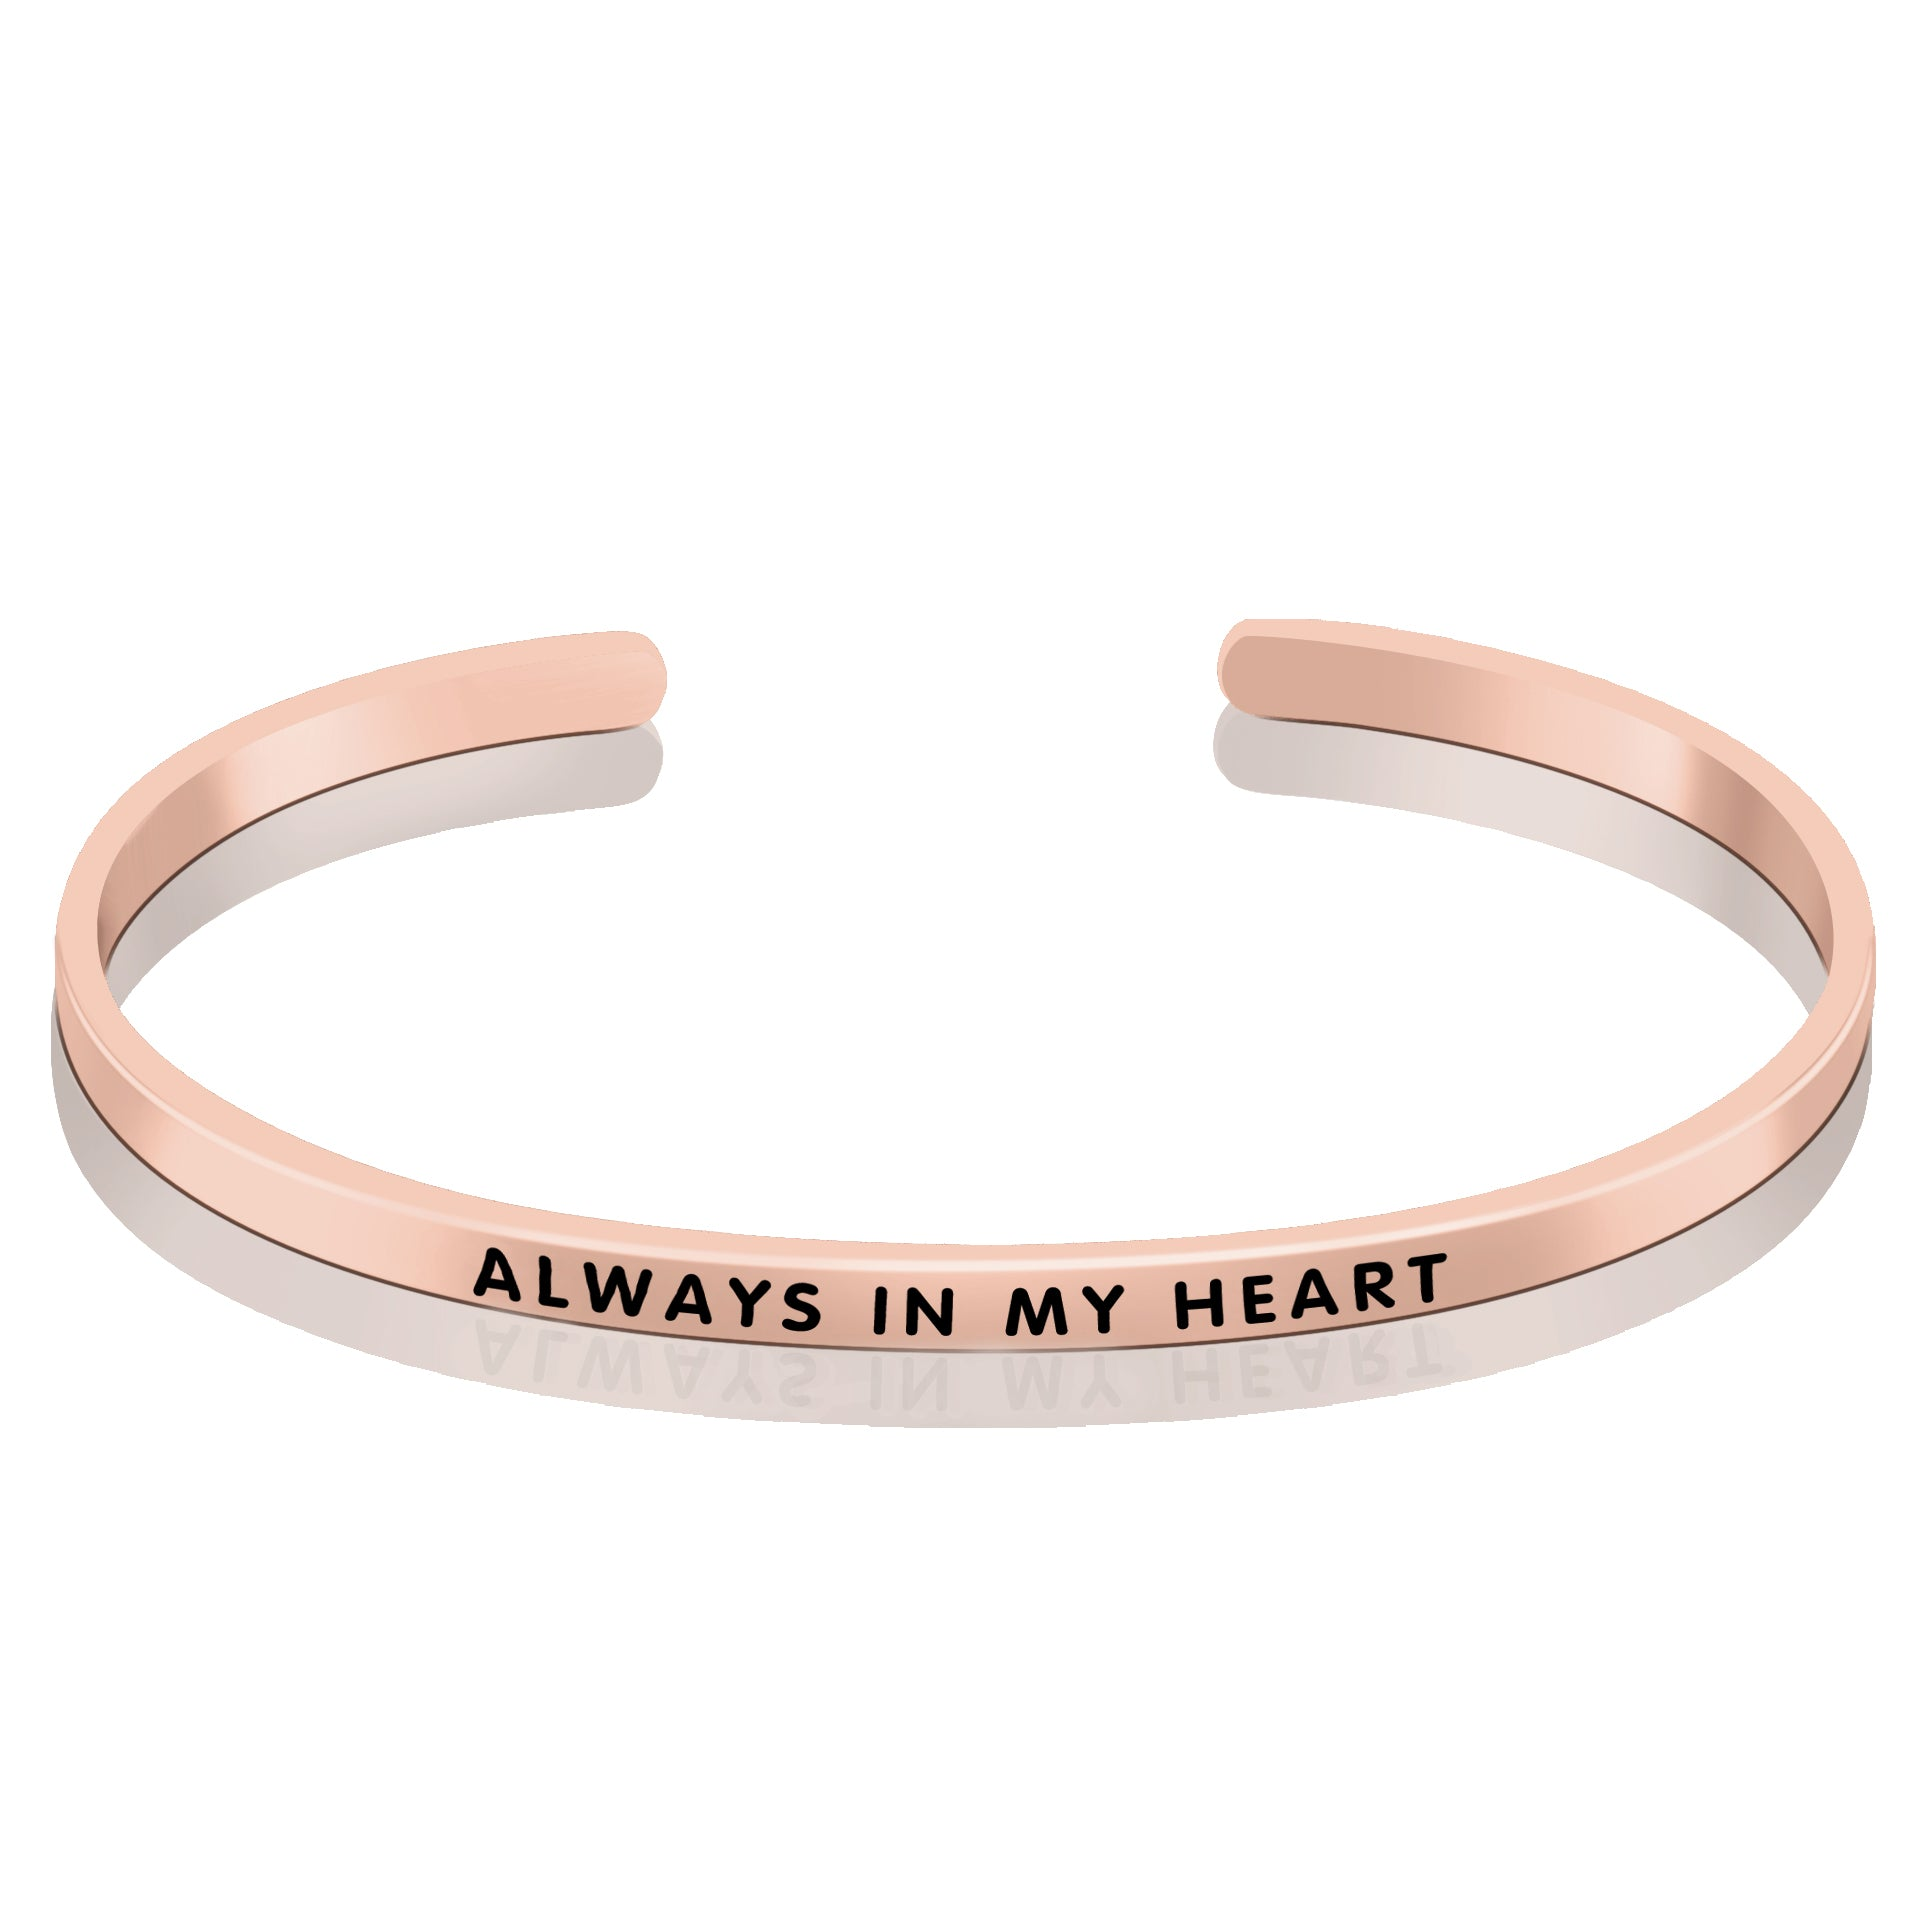 Opening Bangle ALWAYS IN MY HEART Engraved Popular Bangle